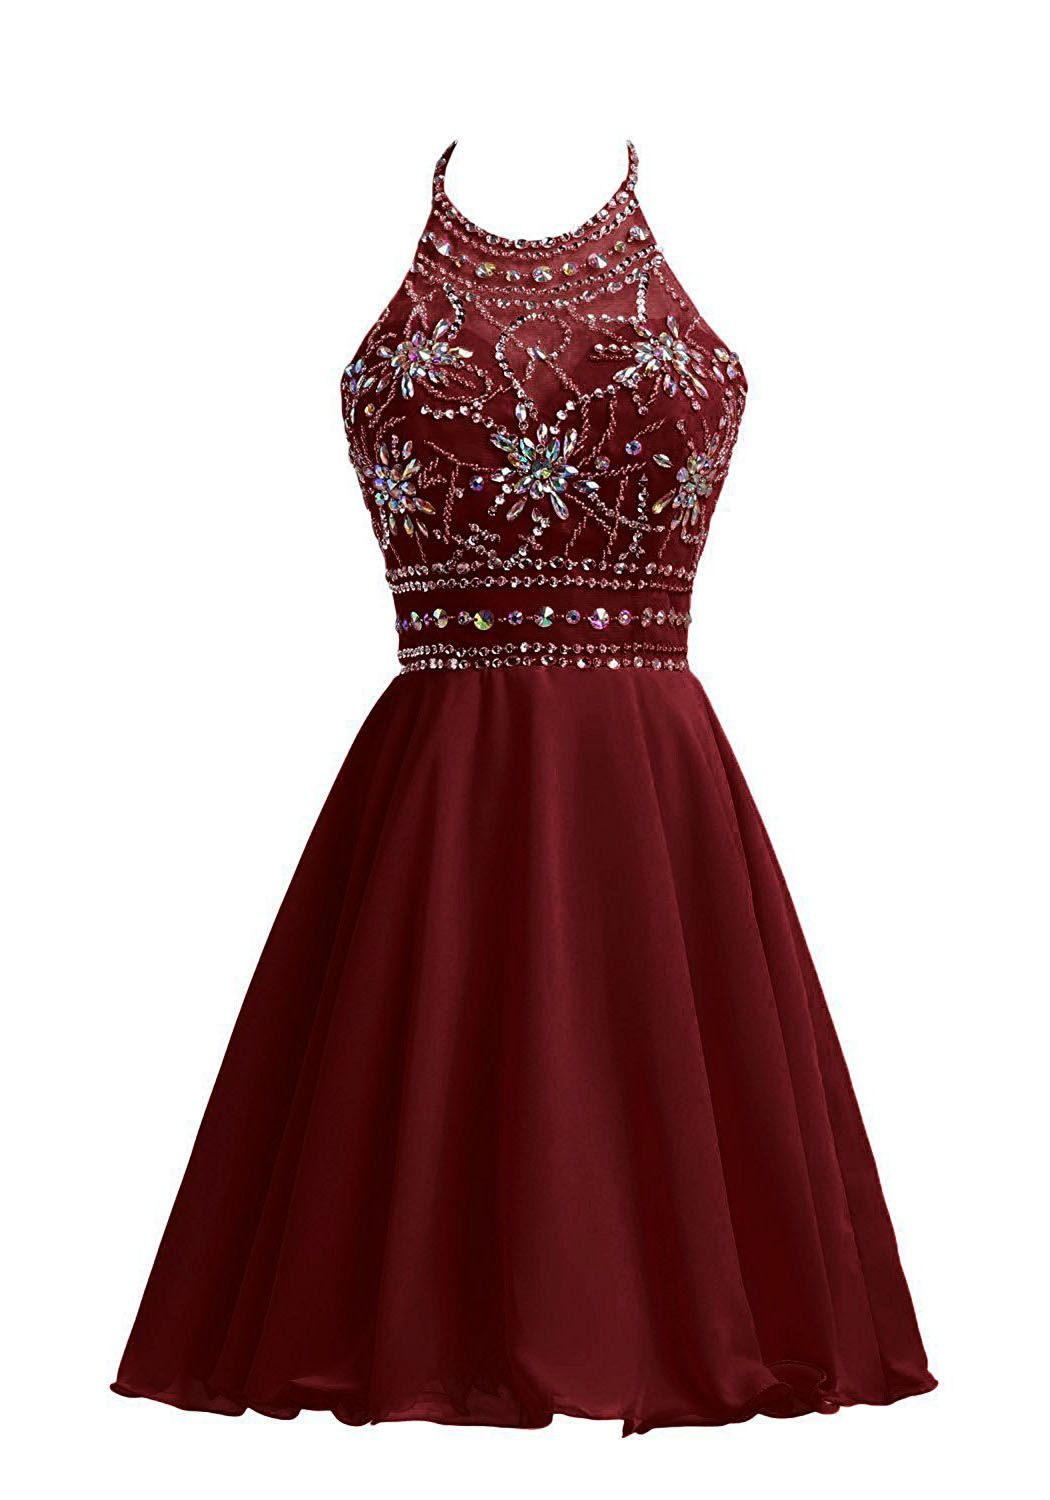 Maroon Short Homecoming Dresses